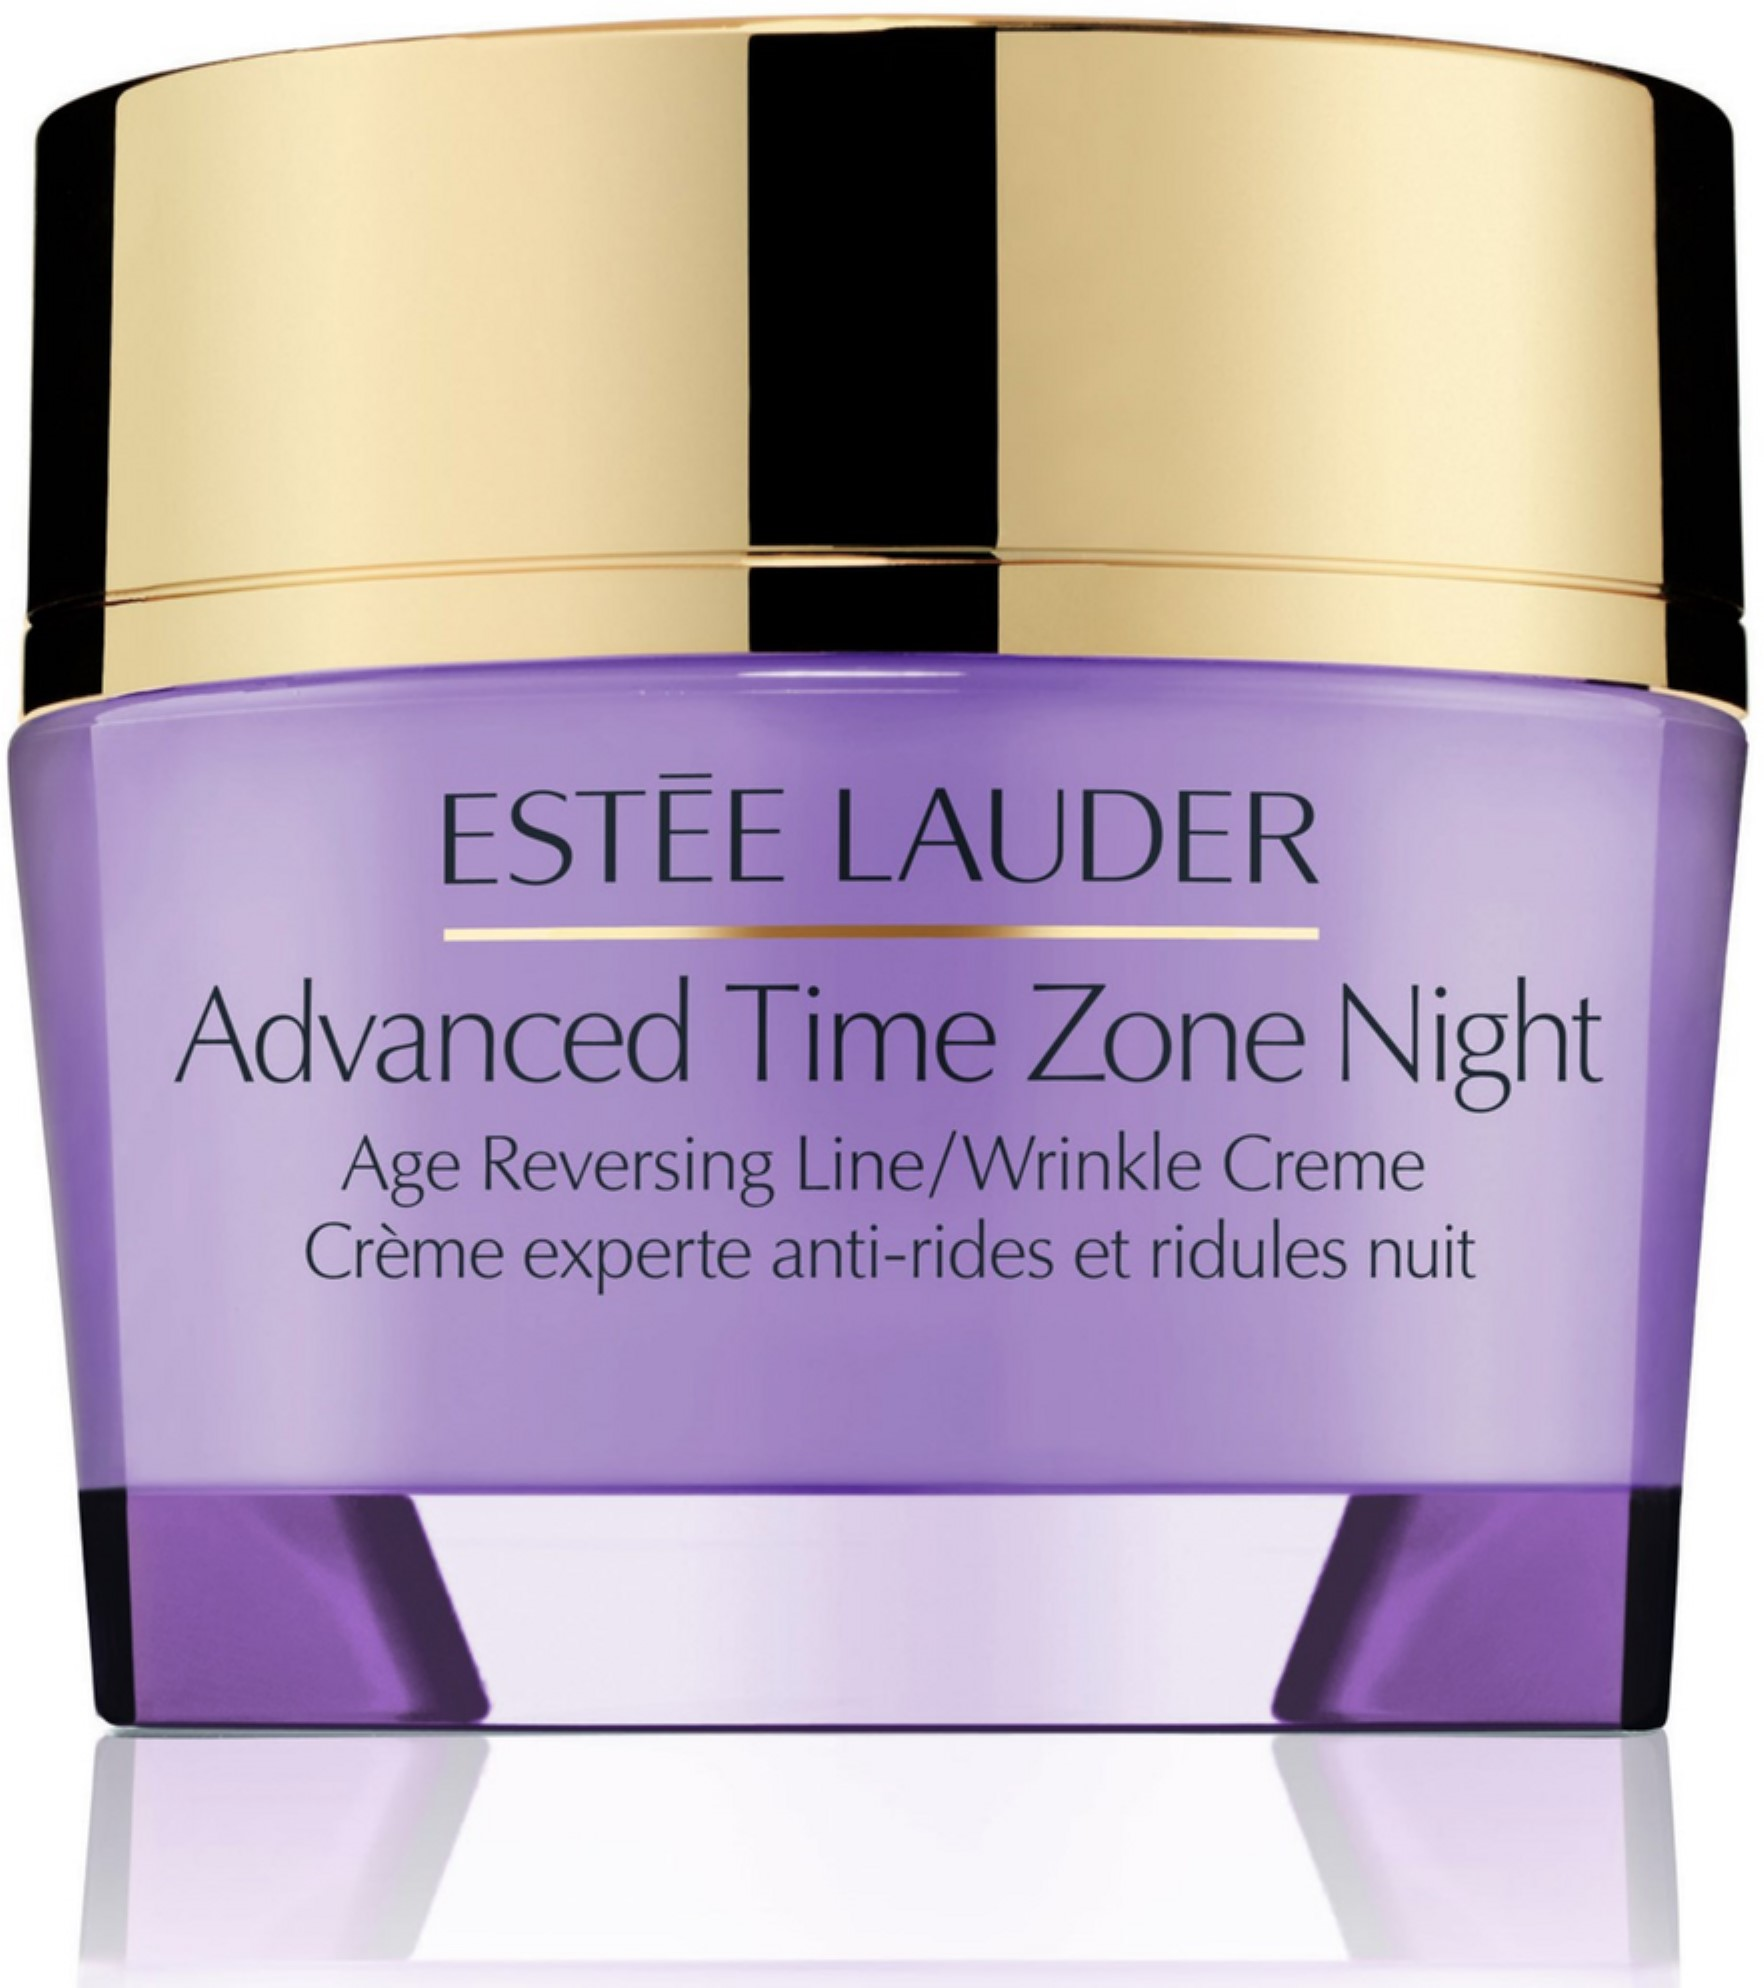 4 Pack - Estee Lauder Advanced Time Zone Night Age Reversing Line/Wrinkle Creme 1.7 oz Dr. Jart+ Dermaclear Micro Water 250ml/8.4oz